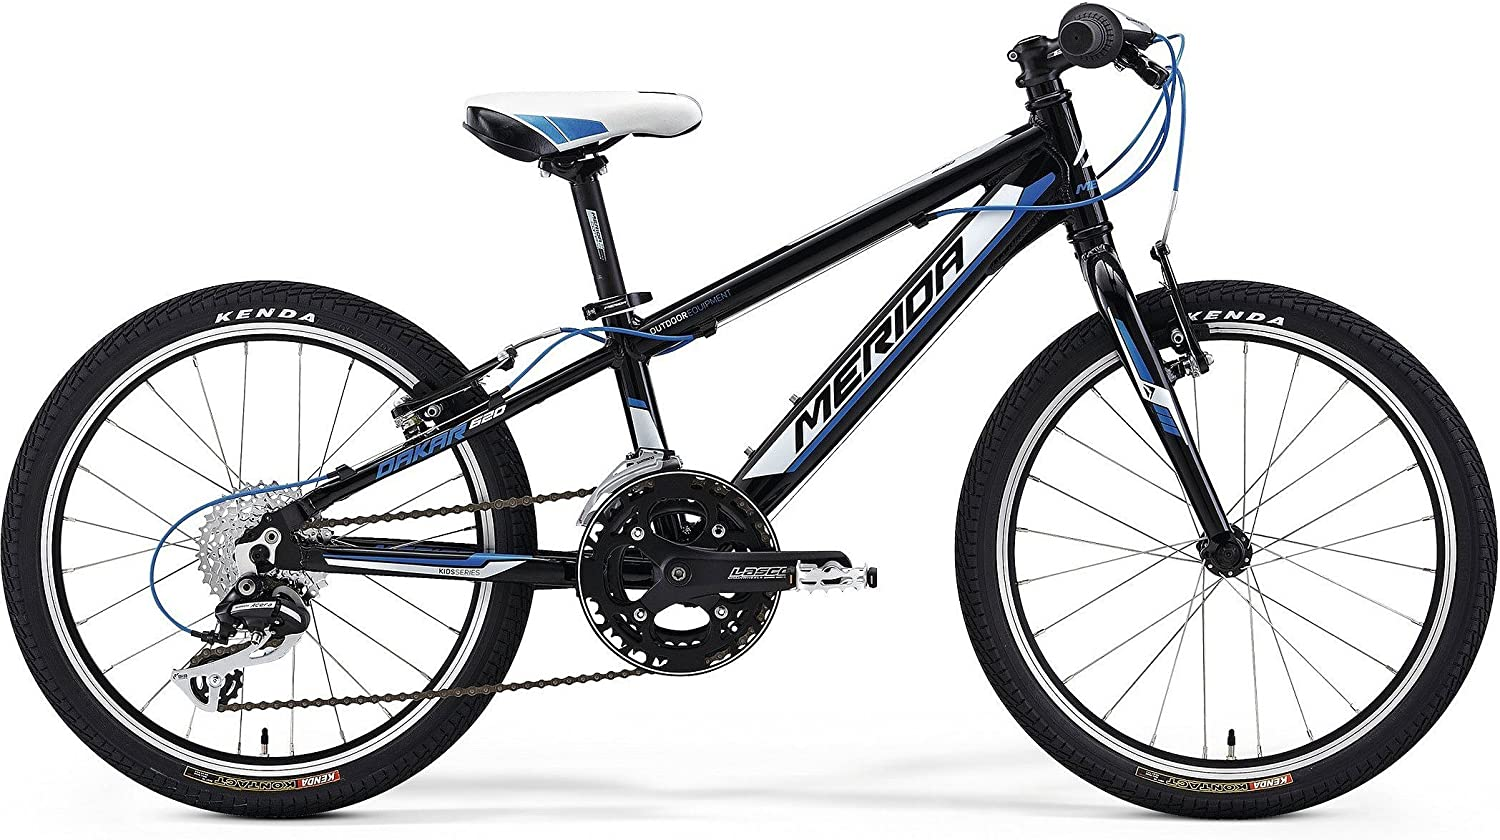 Bicicleta para niños Merida Dakar 620 Race Boy negra 2014: Amazon ...